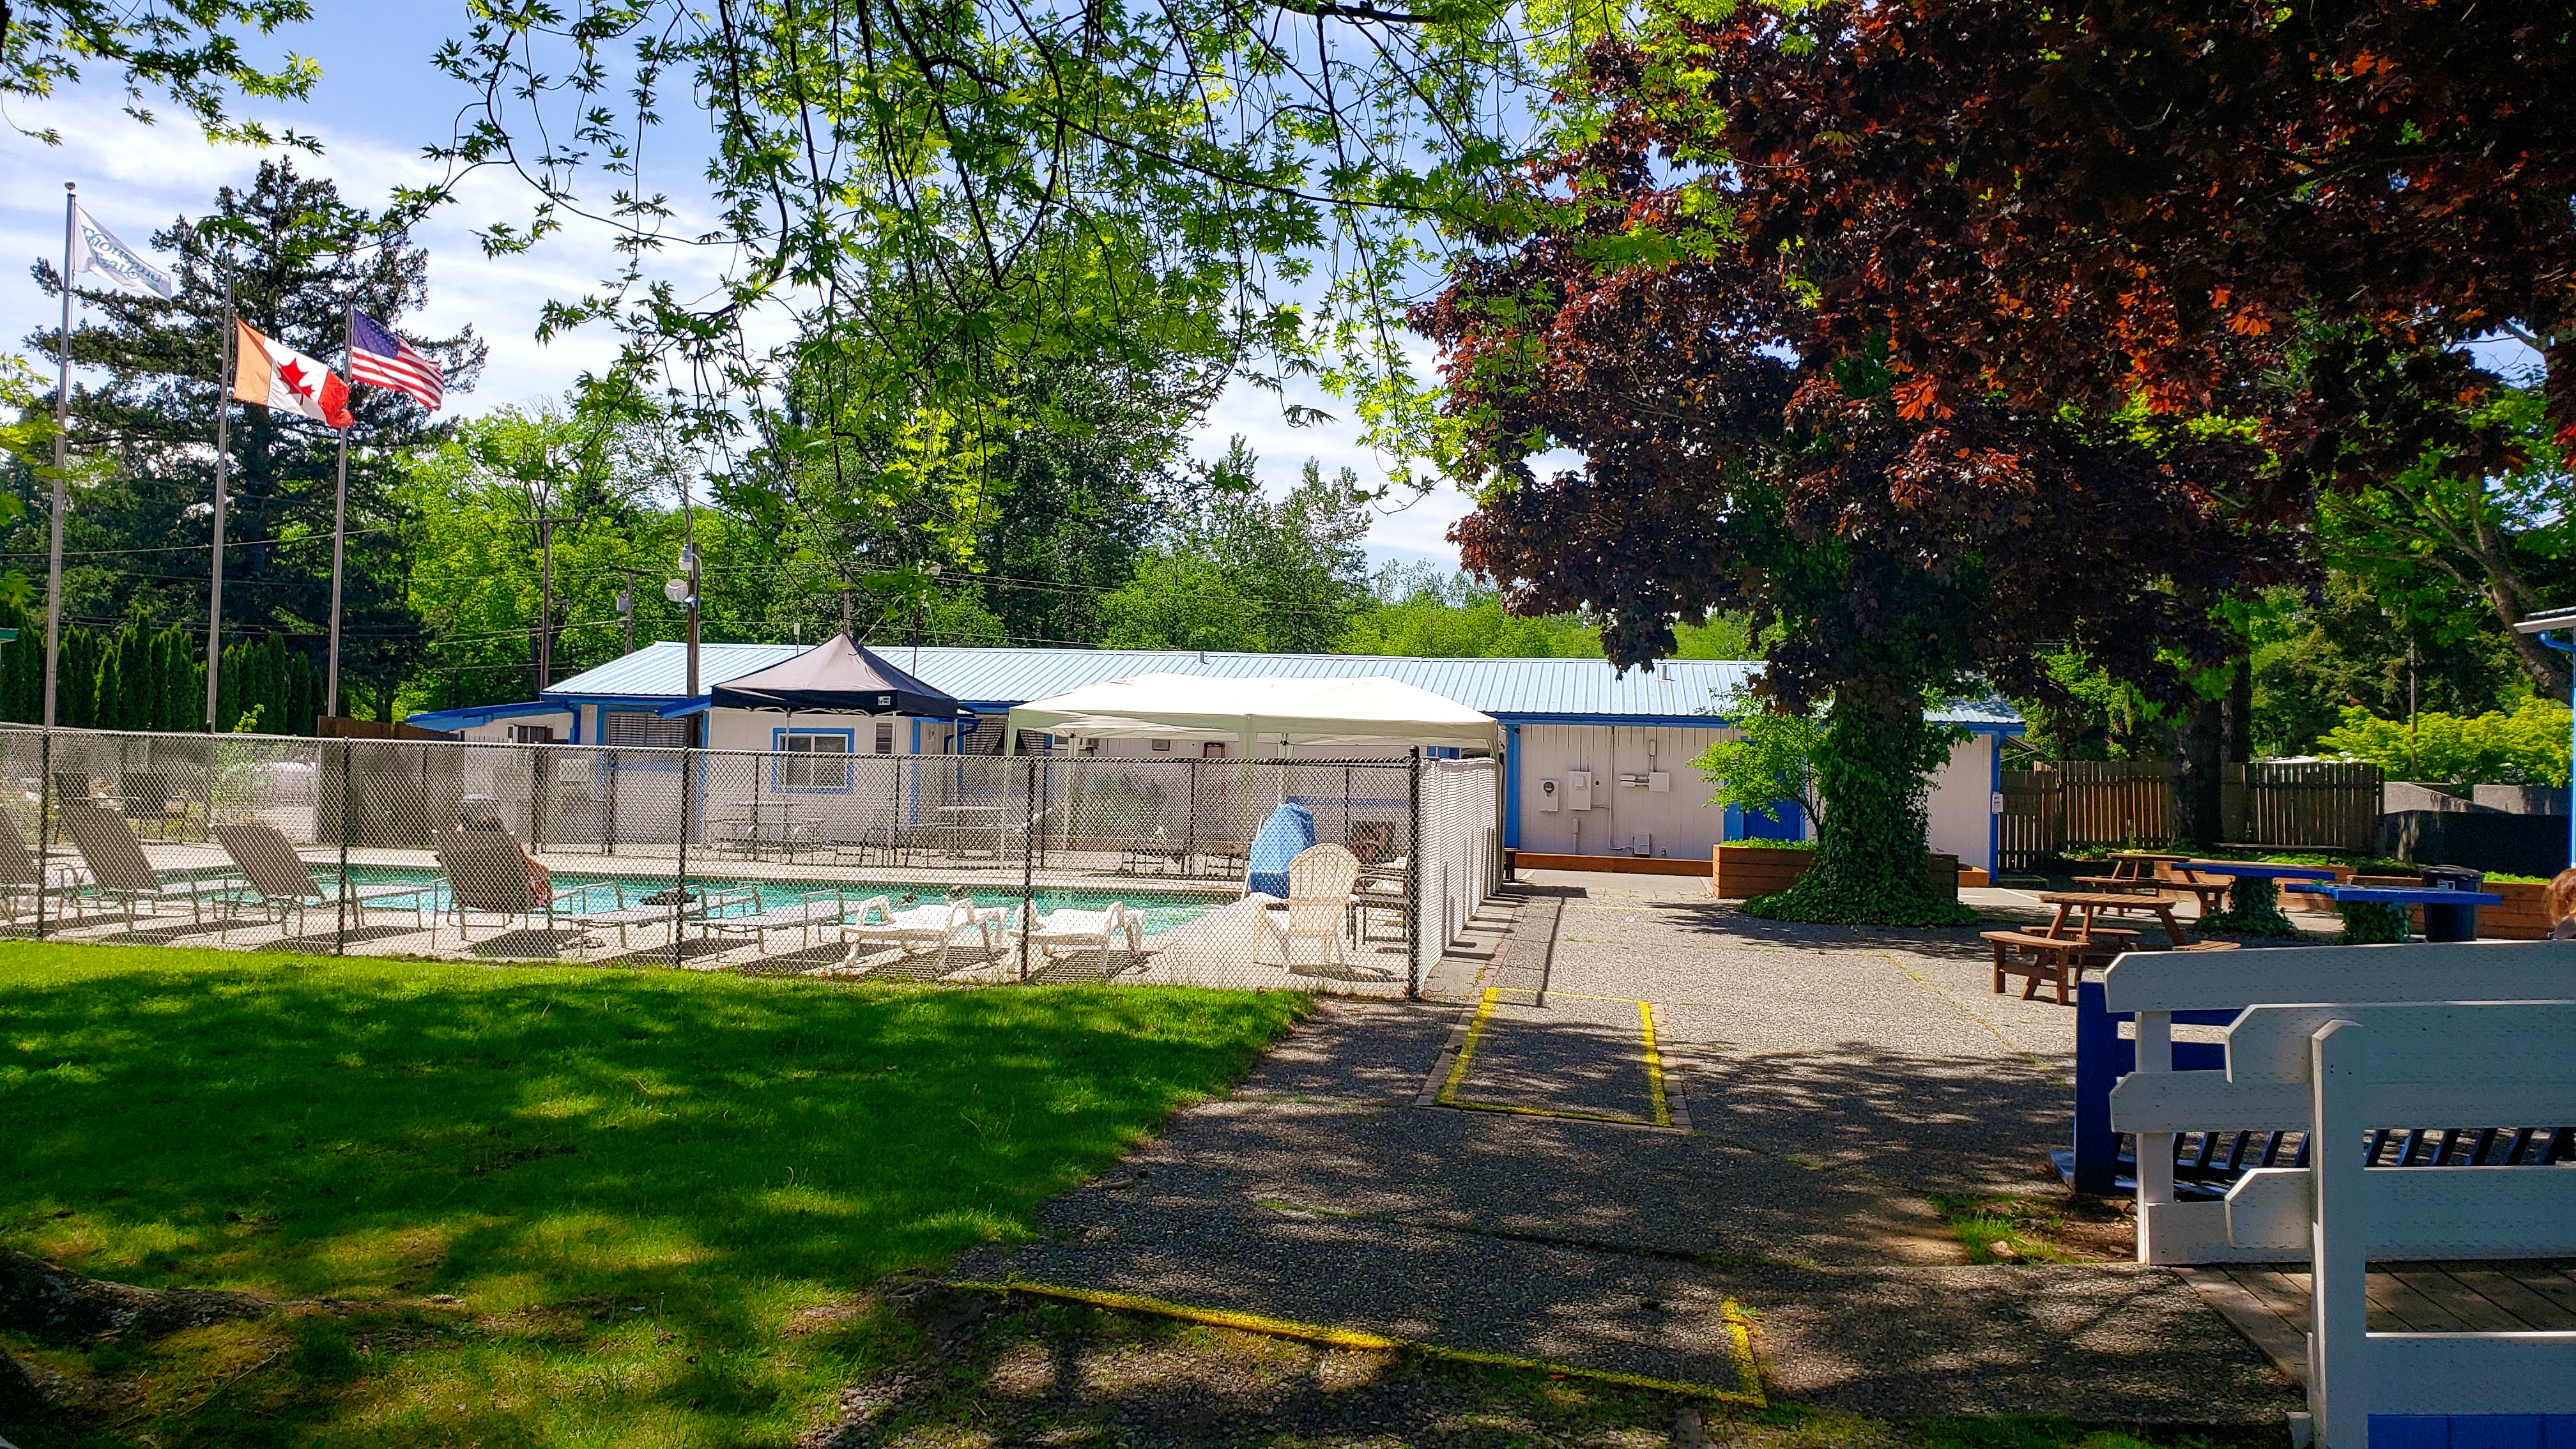 Pool at Birch Bay RV Campground, Thousand Trails